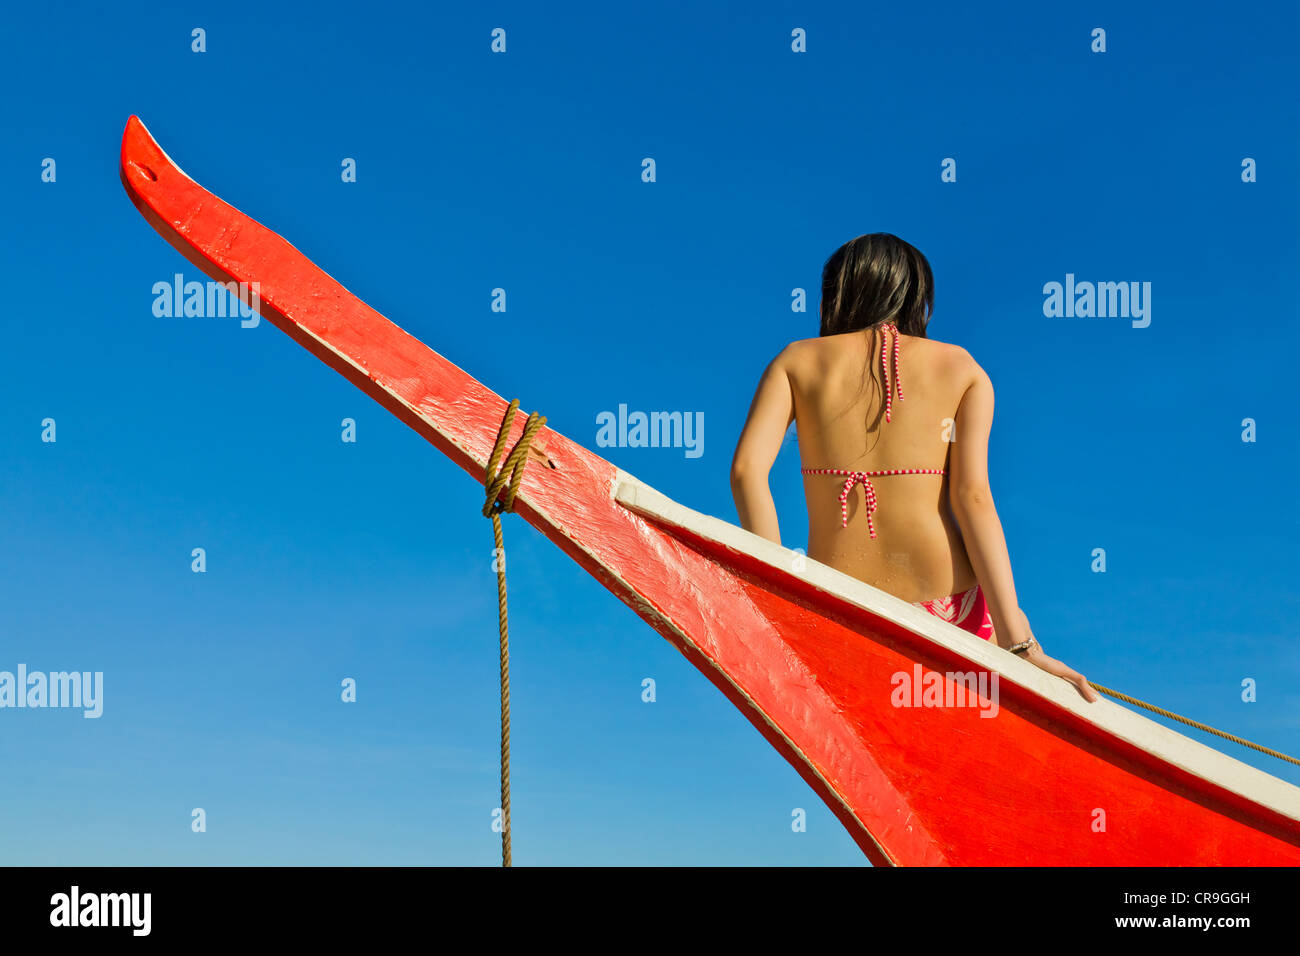 Woman sitting on red painted boat, Bohol Island, Philippines Stock Photo